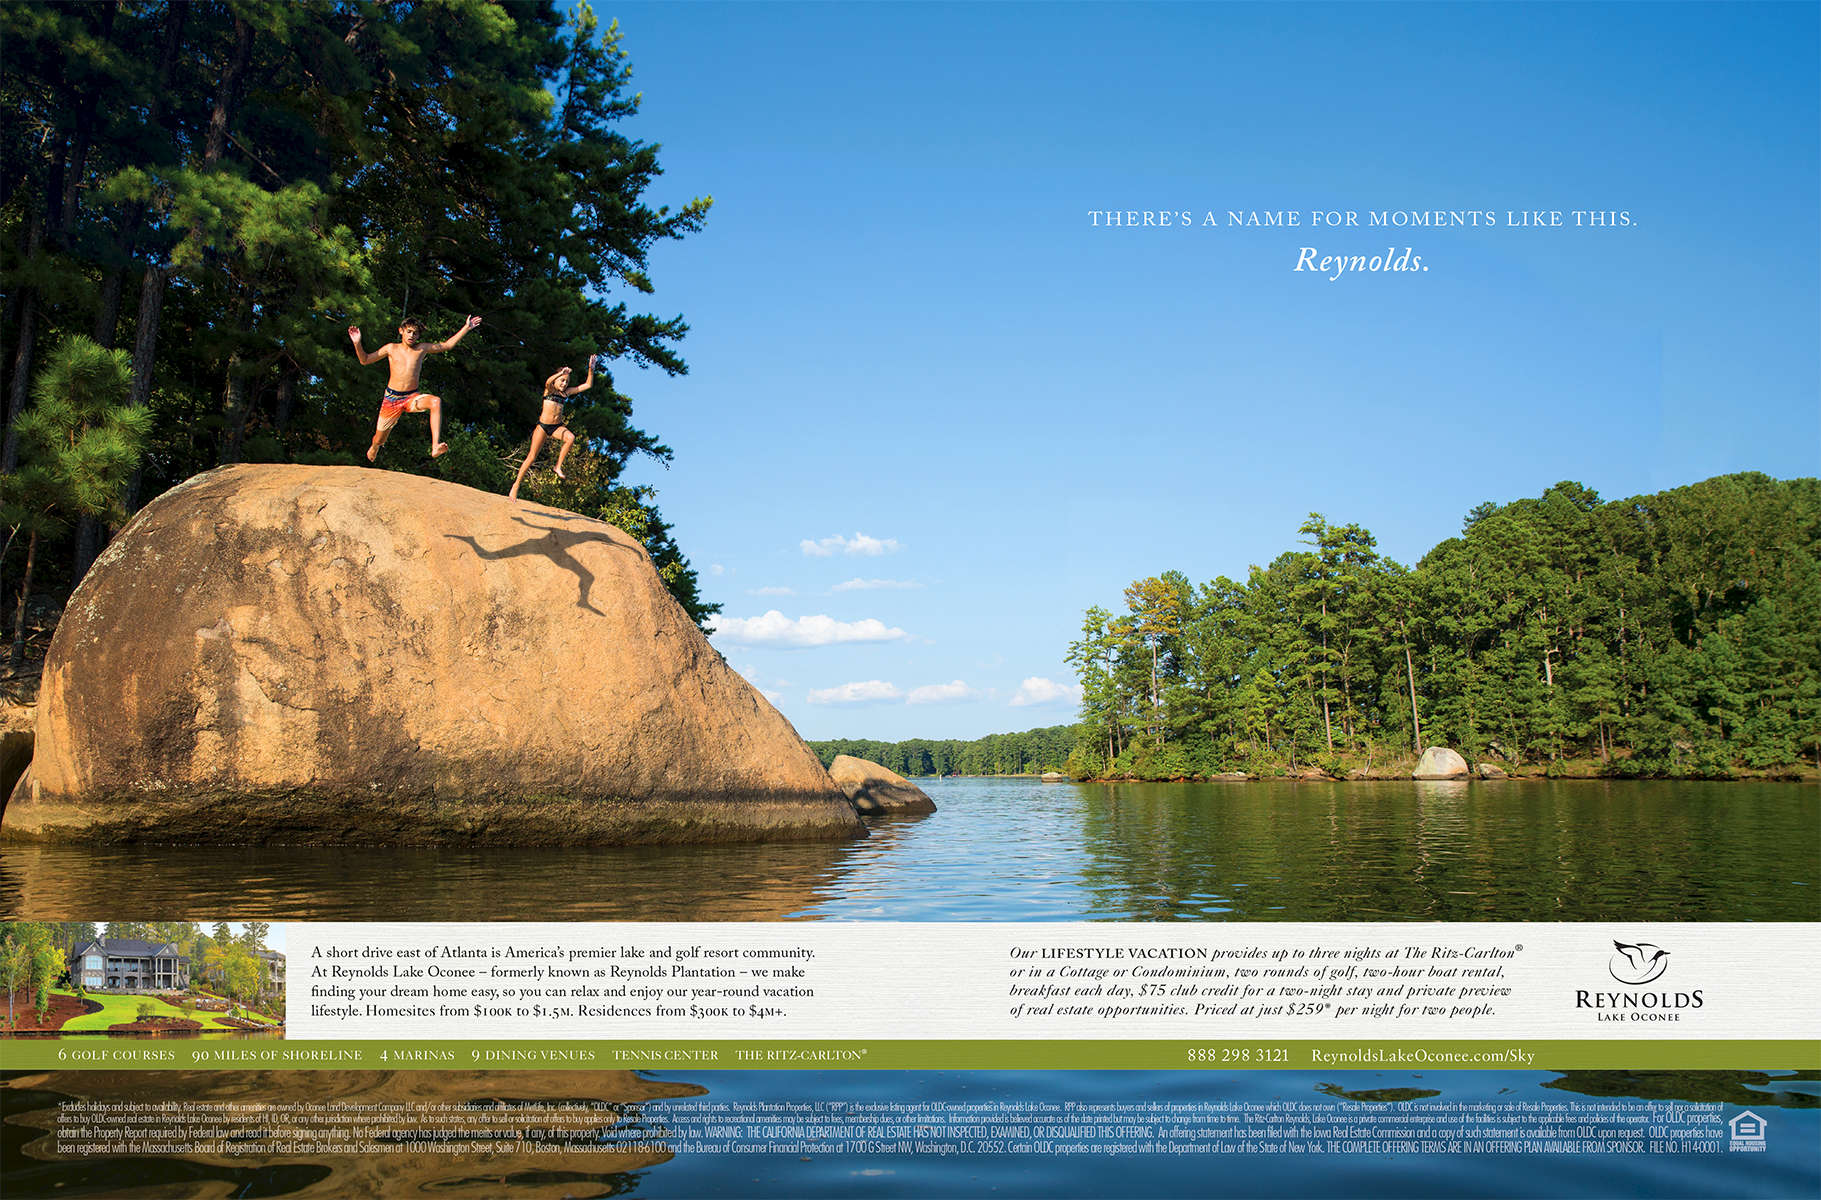 Client: Reynolds Lake Oconee/McQuire Marketing